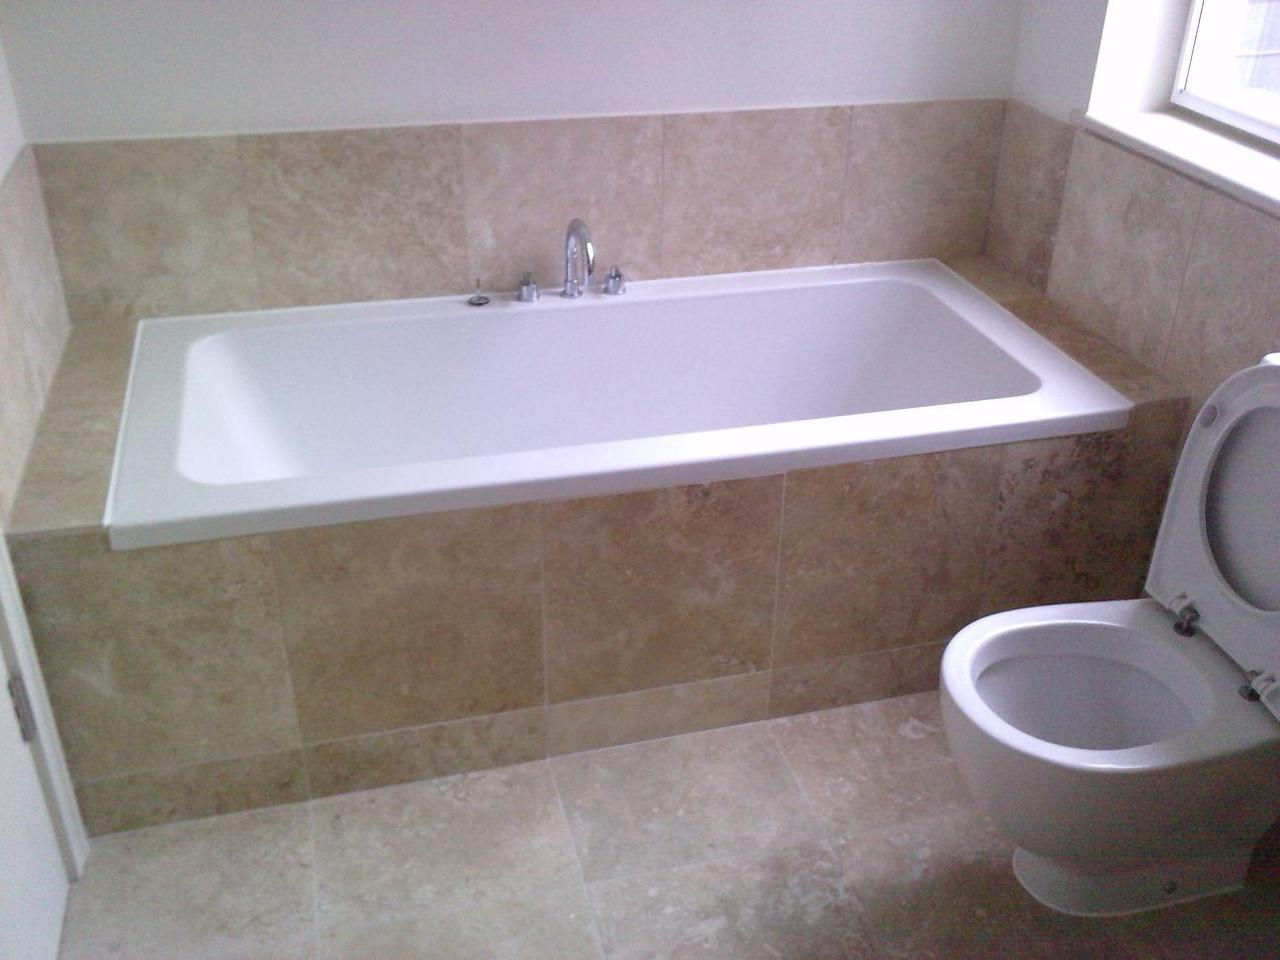 Bath With Shower Screen Wix Com Carpentry Profile Created By Mysite69 Based On